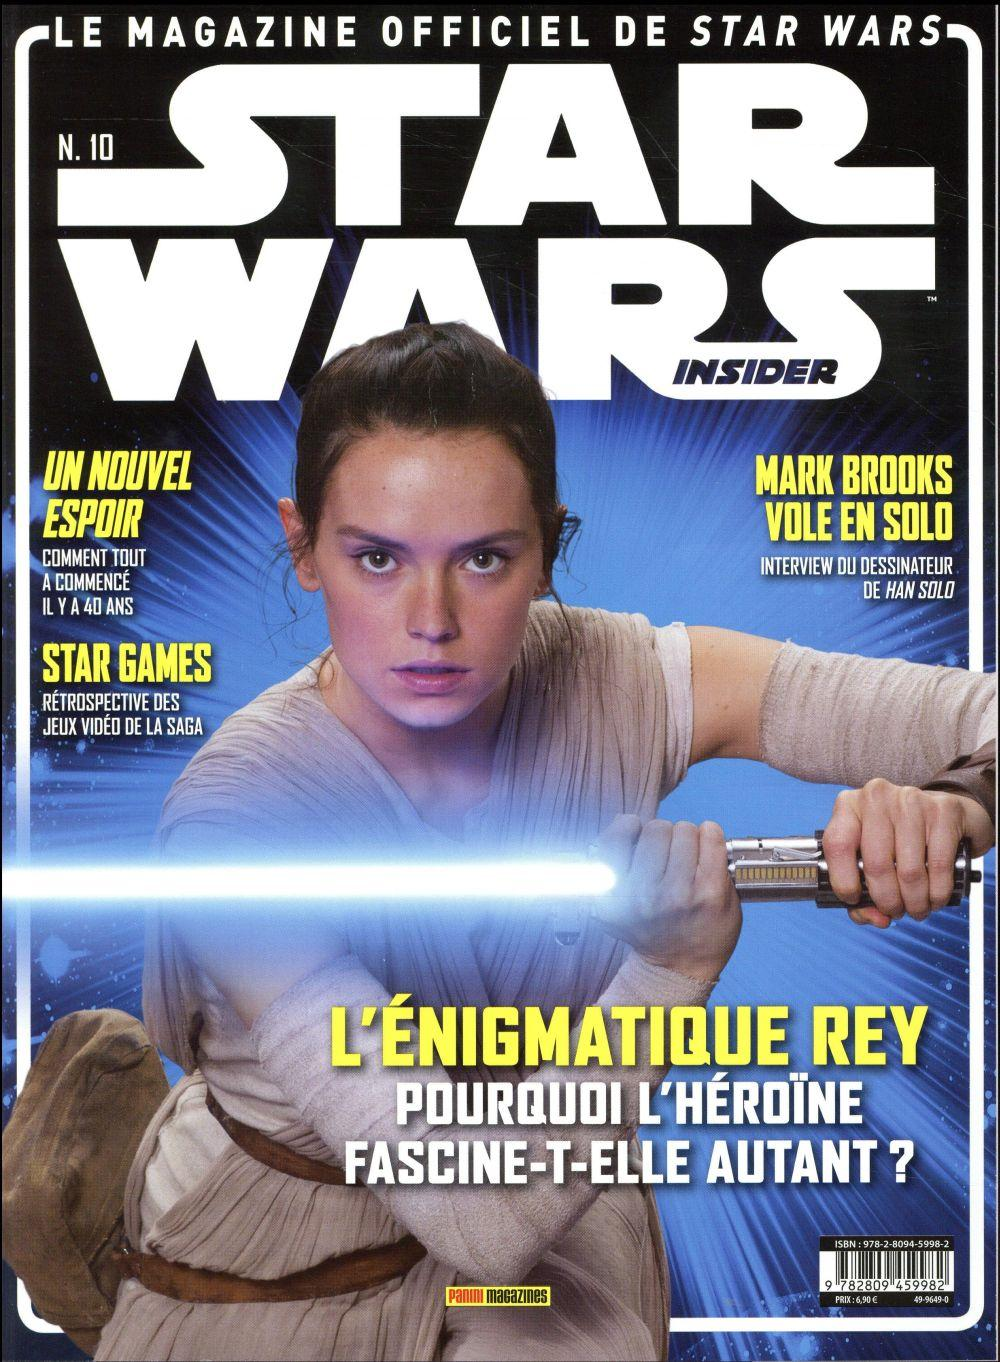 Star Wars Insider N.10 ; février-avril 2017  - Star Wars Insider